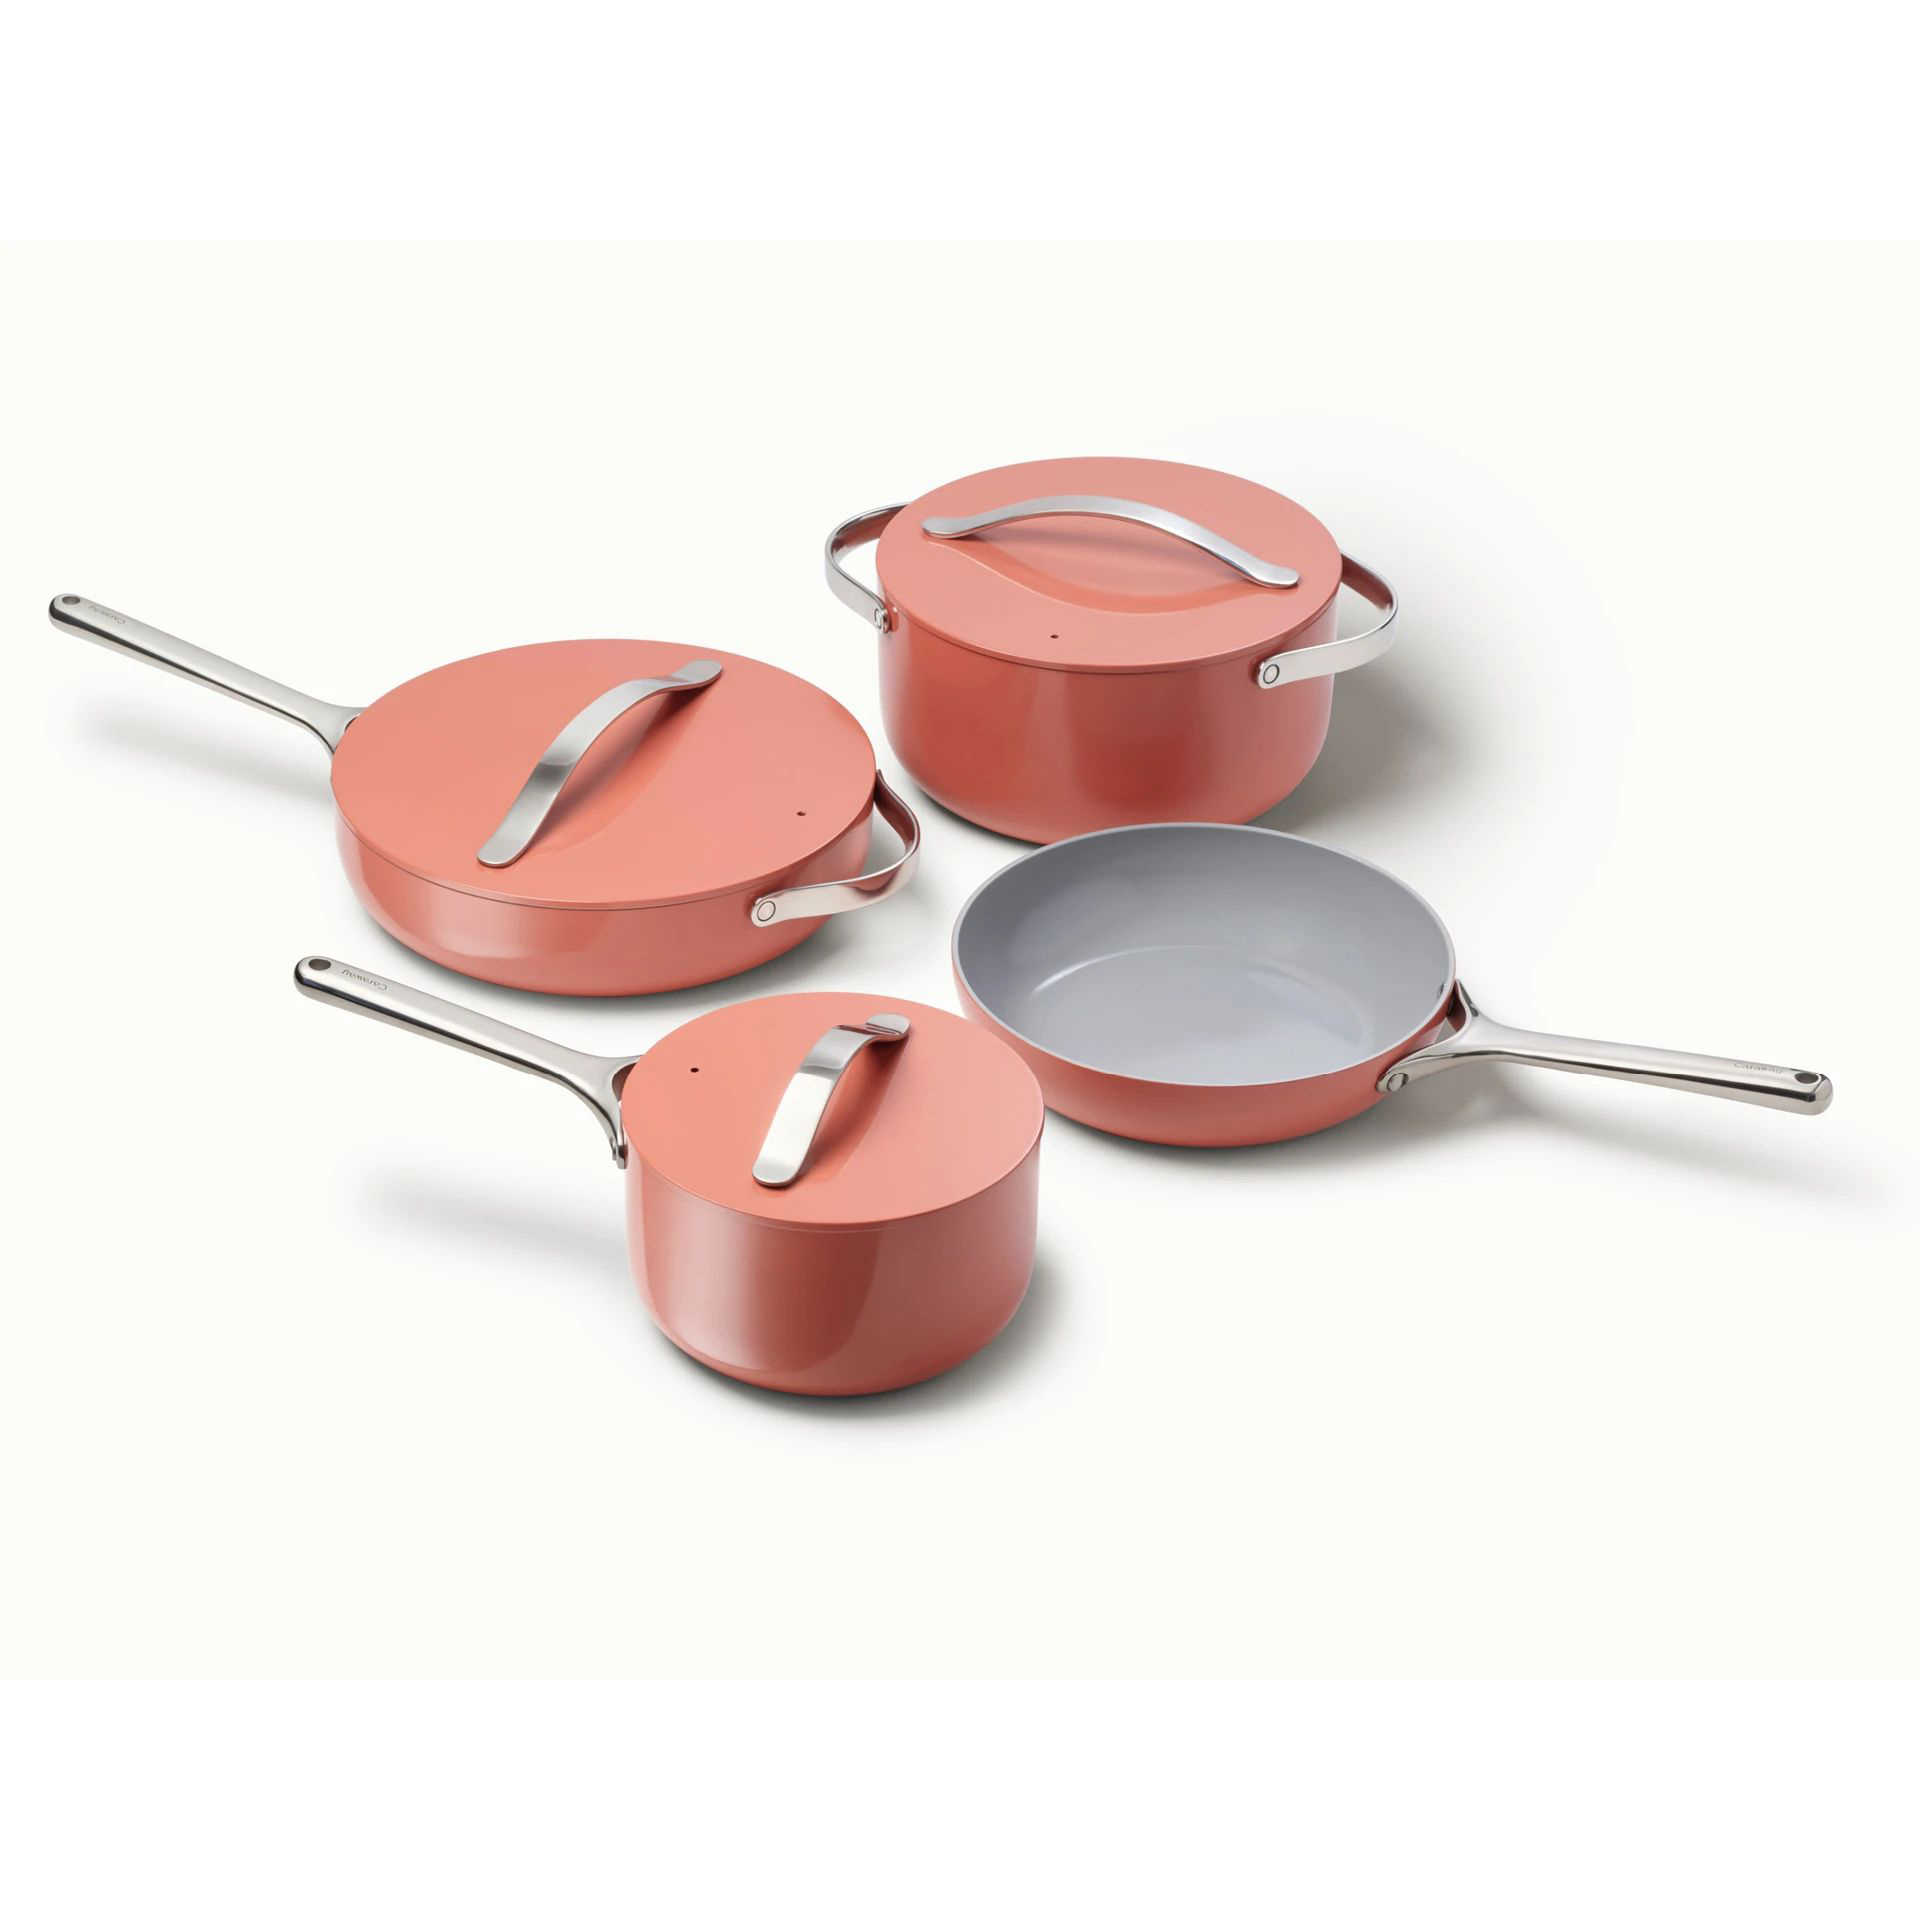 Caraway Perracotta Cookware Set